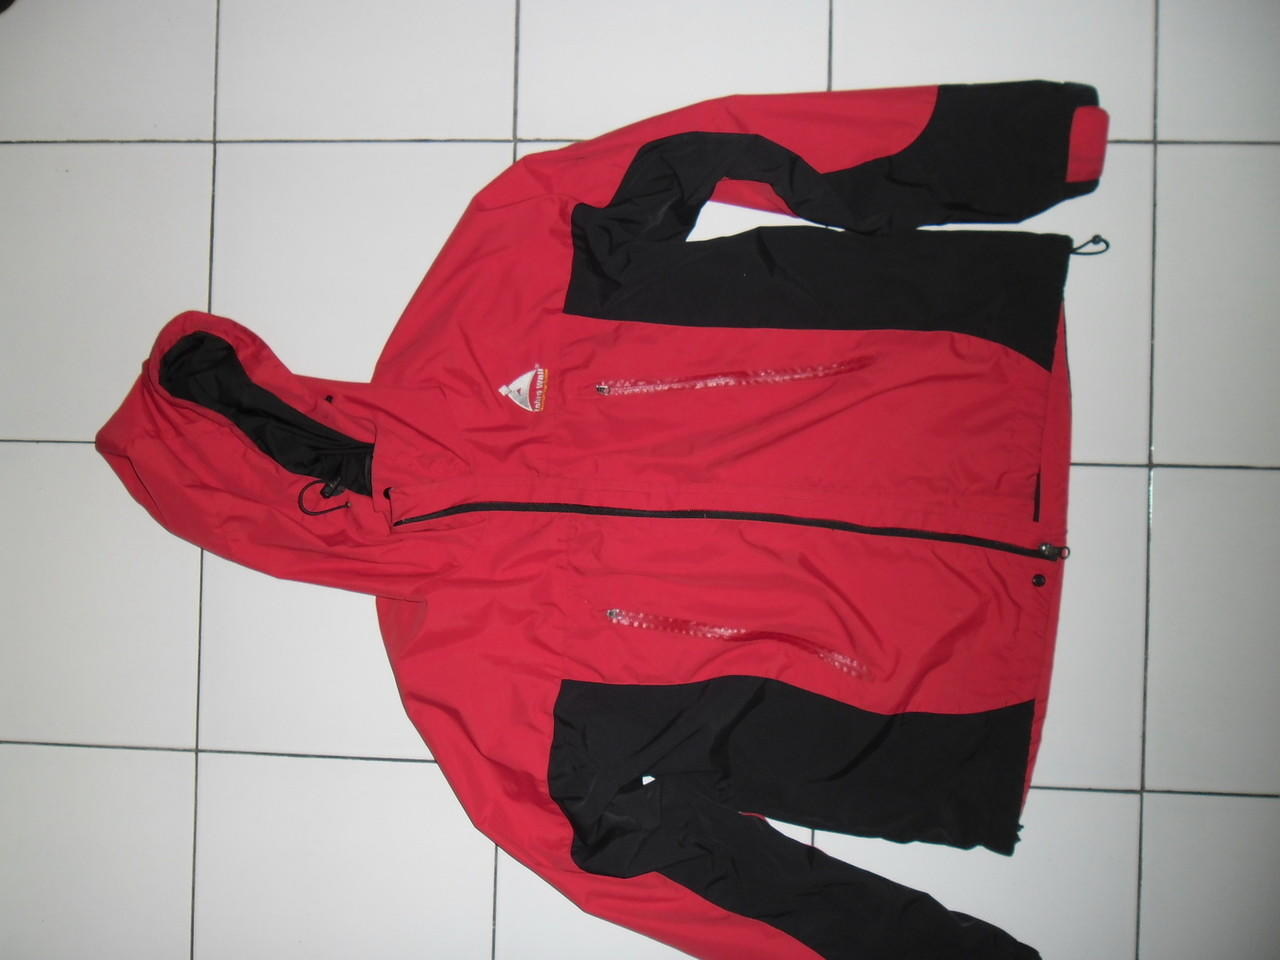 Jaket Parasut waterproof Zebra wall Ori Second